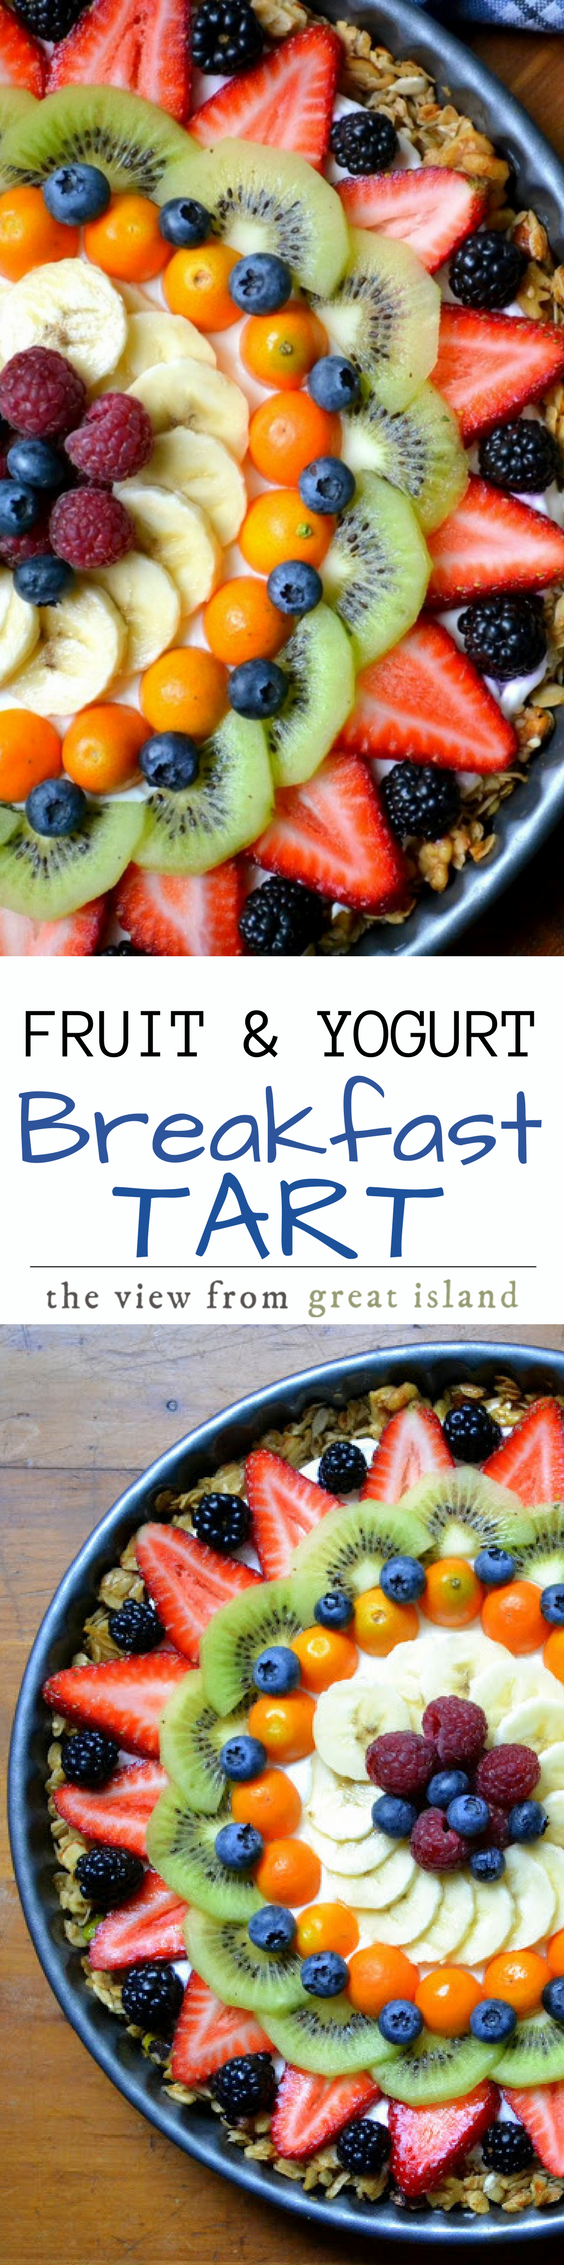 This Beautiful Breakfast Tart has a gluten granola crust filled with thick Greek yogurt, and topped with a colorful sunburst of fresh juicy fruit. Yes it looks too beautiful to eat, but dig in anyway ~ it may be beautiful, but it's still breakfast! #tart #fruittart #glutenfreetart #granola #yogurtparfait #breakfast #brunch #mother'sDay #Easter #glutenfree